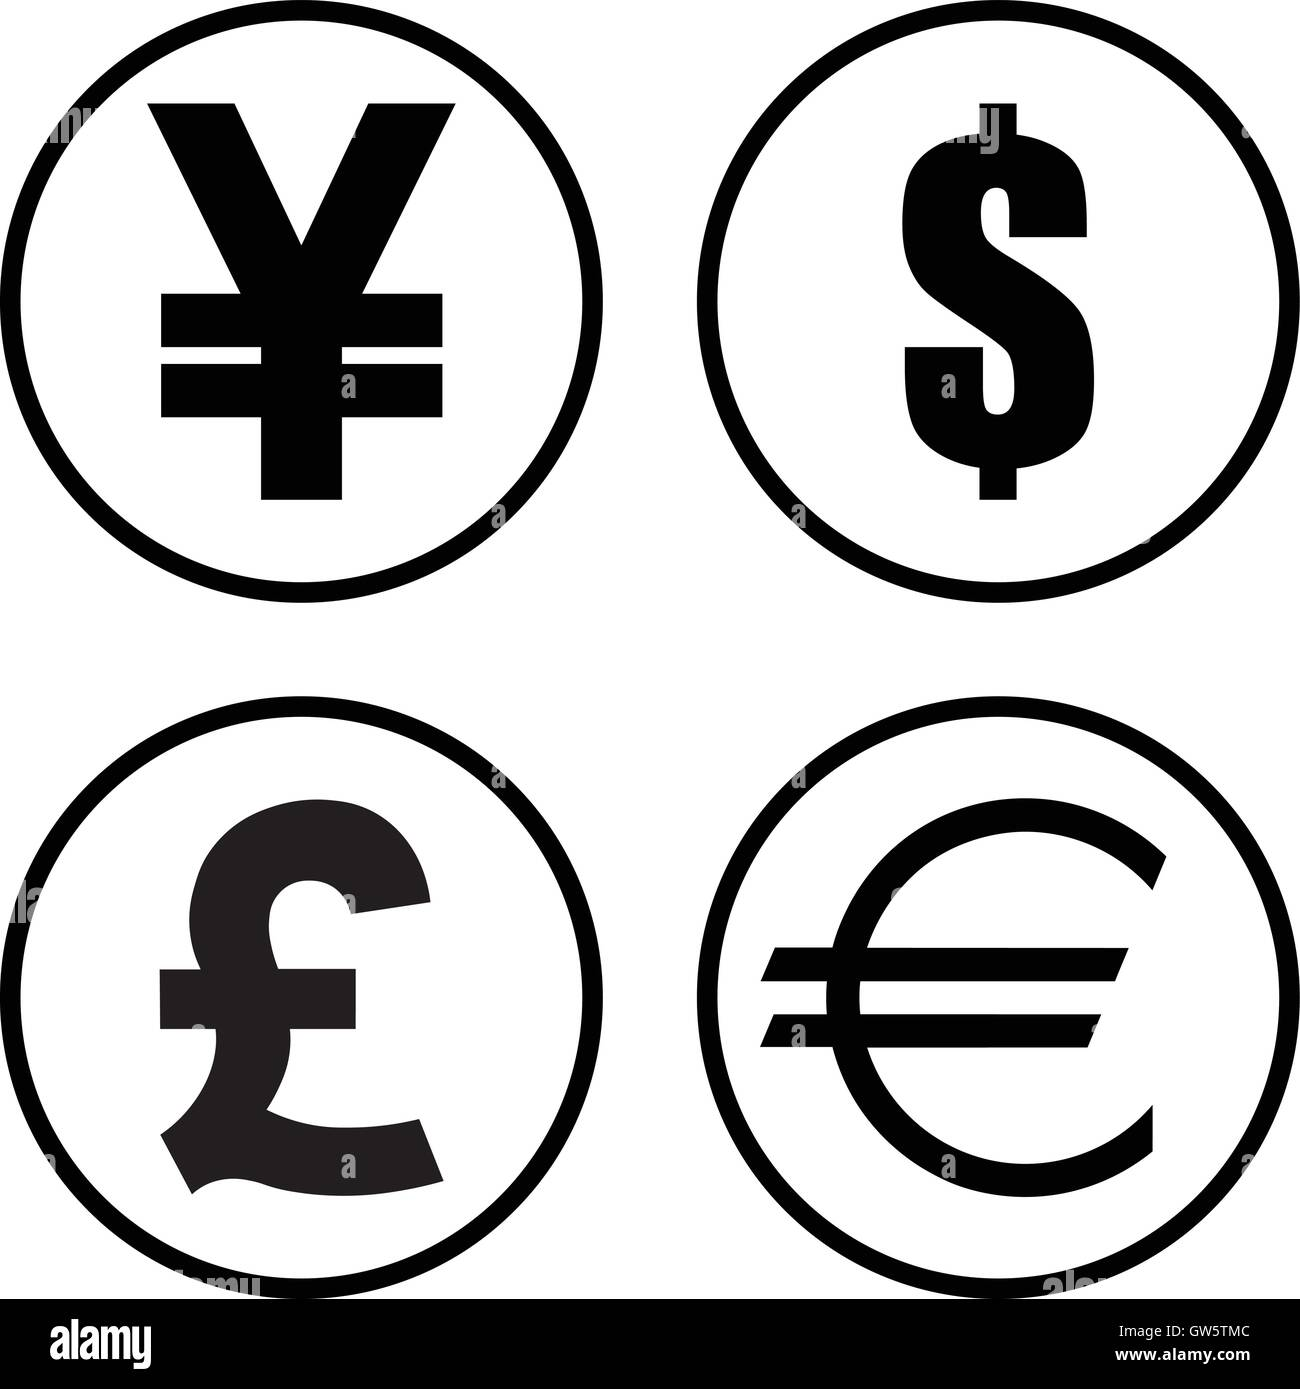 Yen yuan dollar pound and euro currency symbol set round yen yuan dollar pound and euro currency symbol set round money icons vector illustration biocorpaavc Images